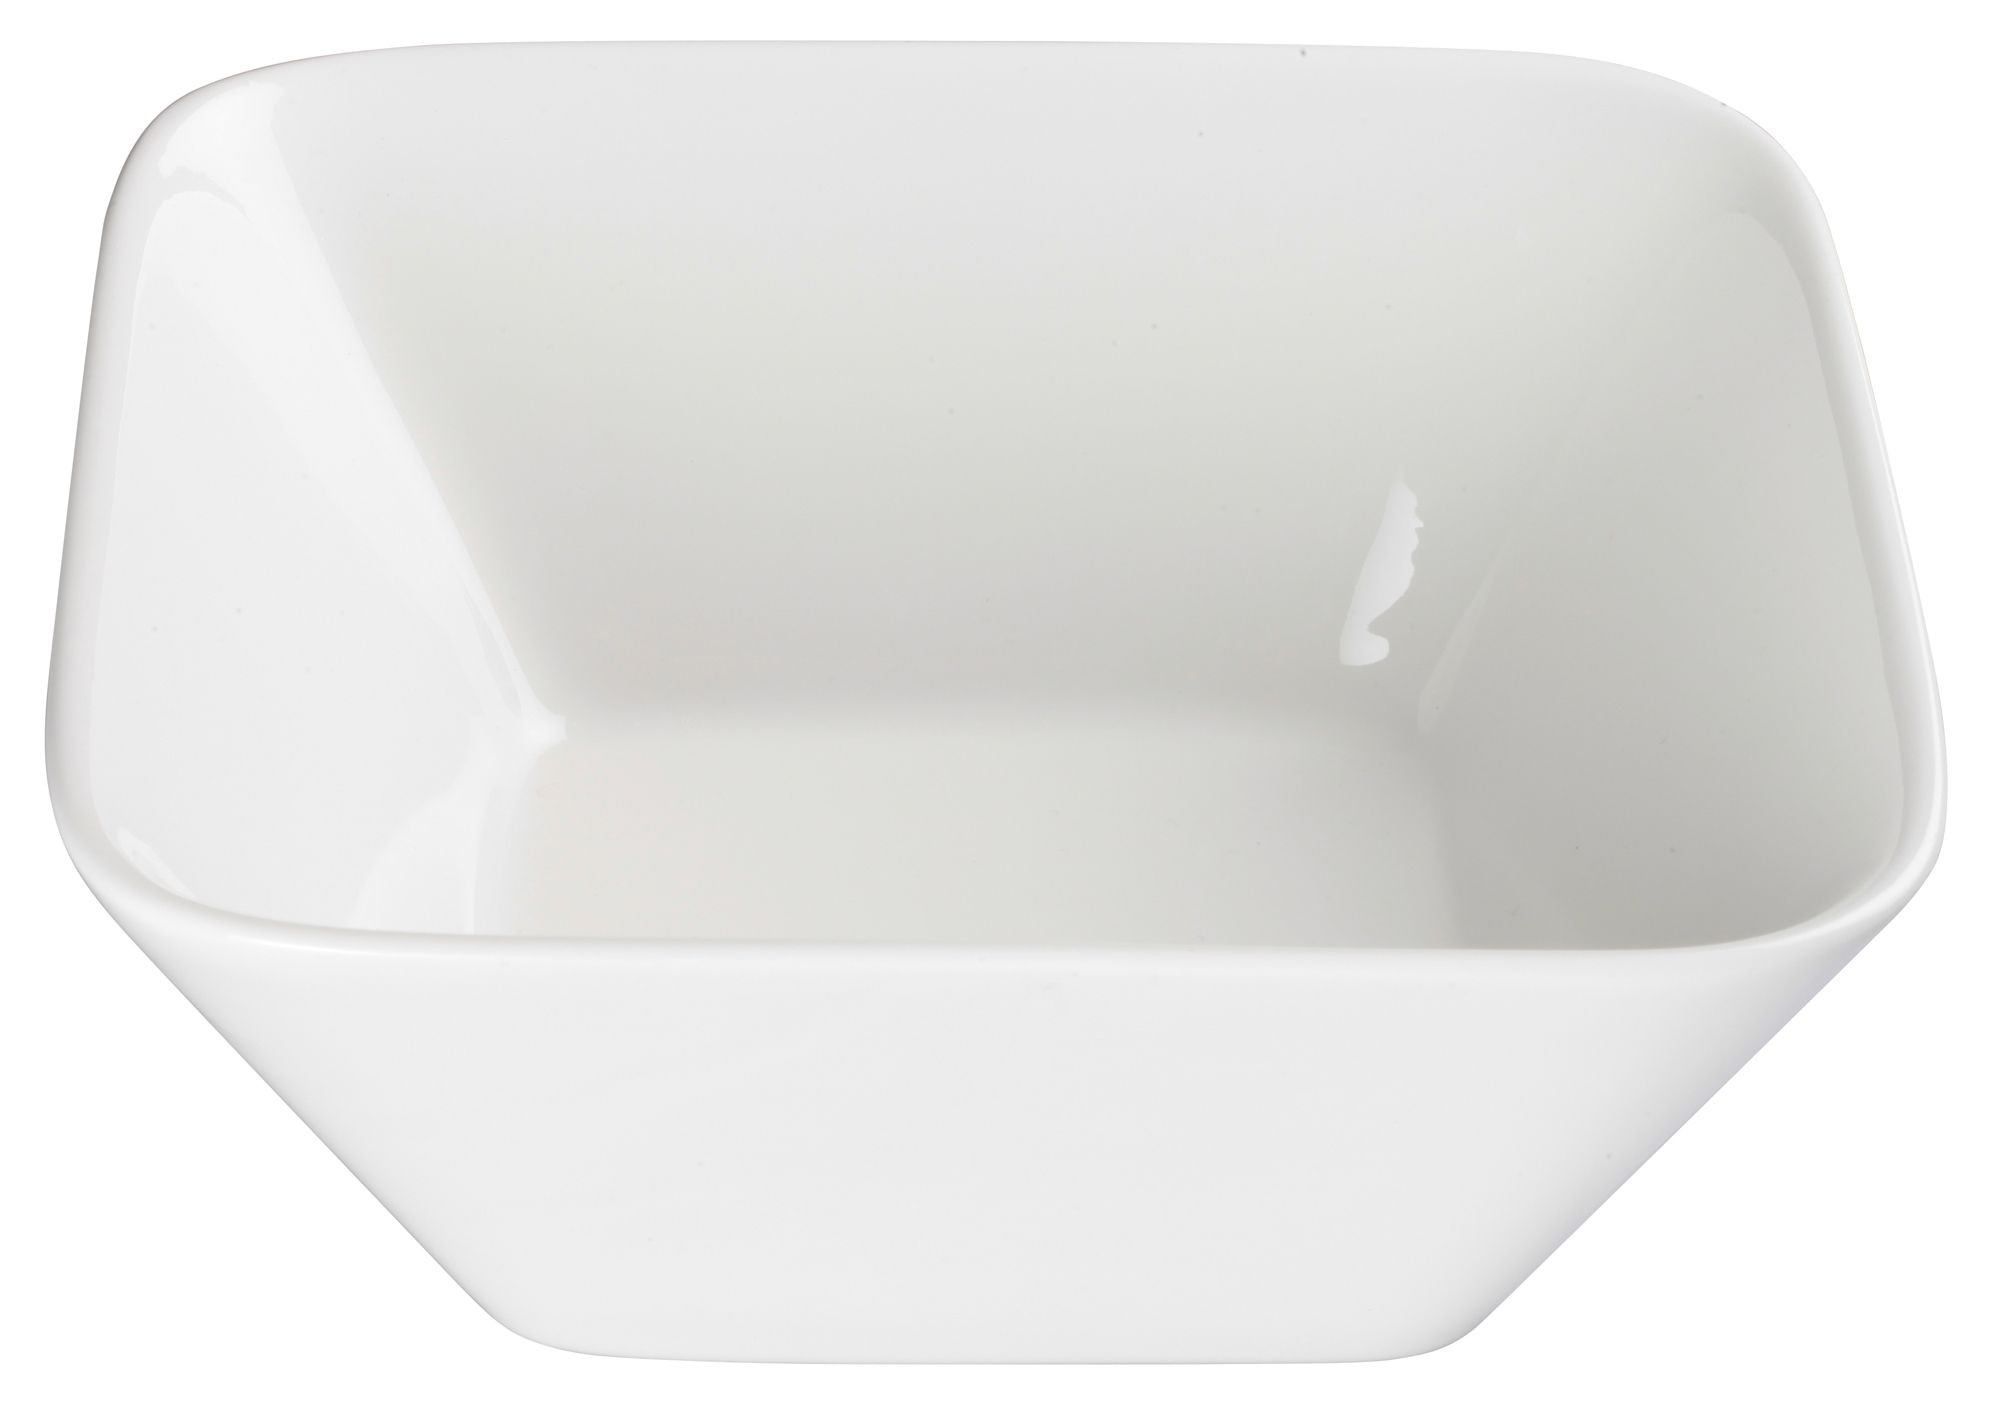 Winco WDP008-104 Laurets Porcelain Bright White Square Bowl 7-5/8""